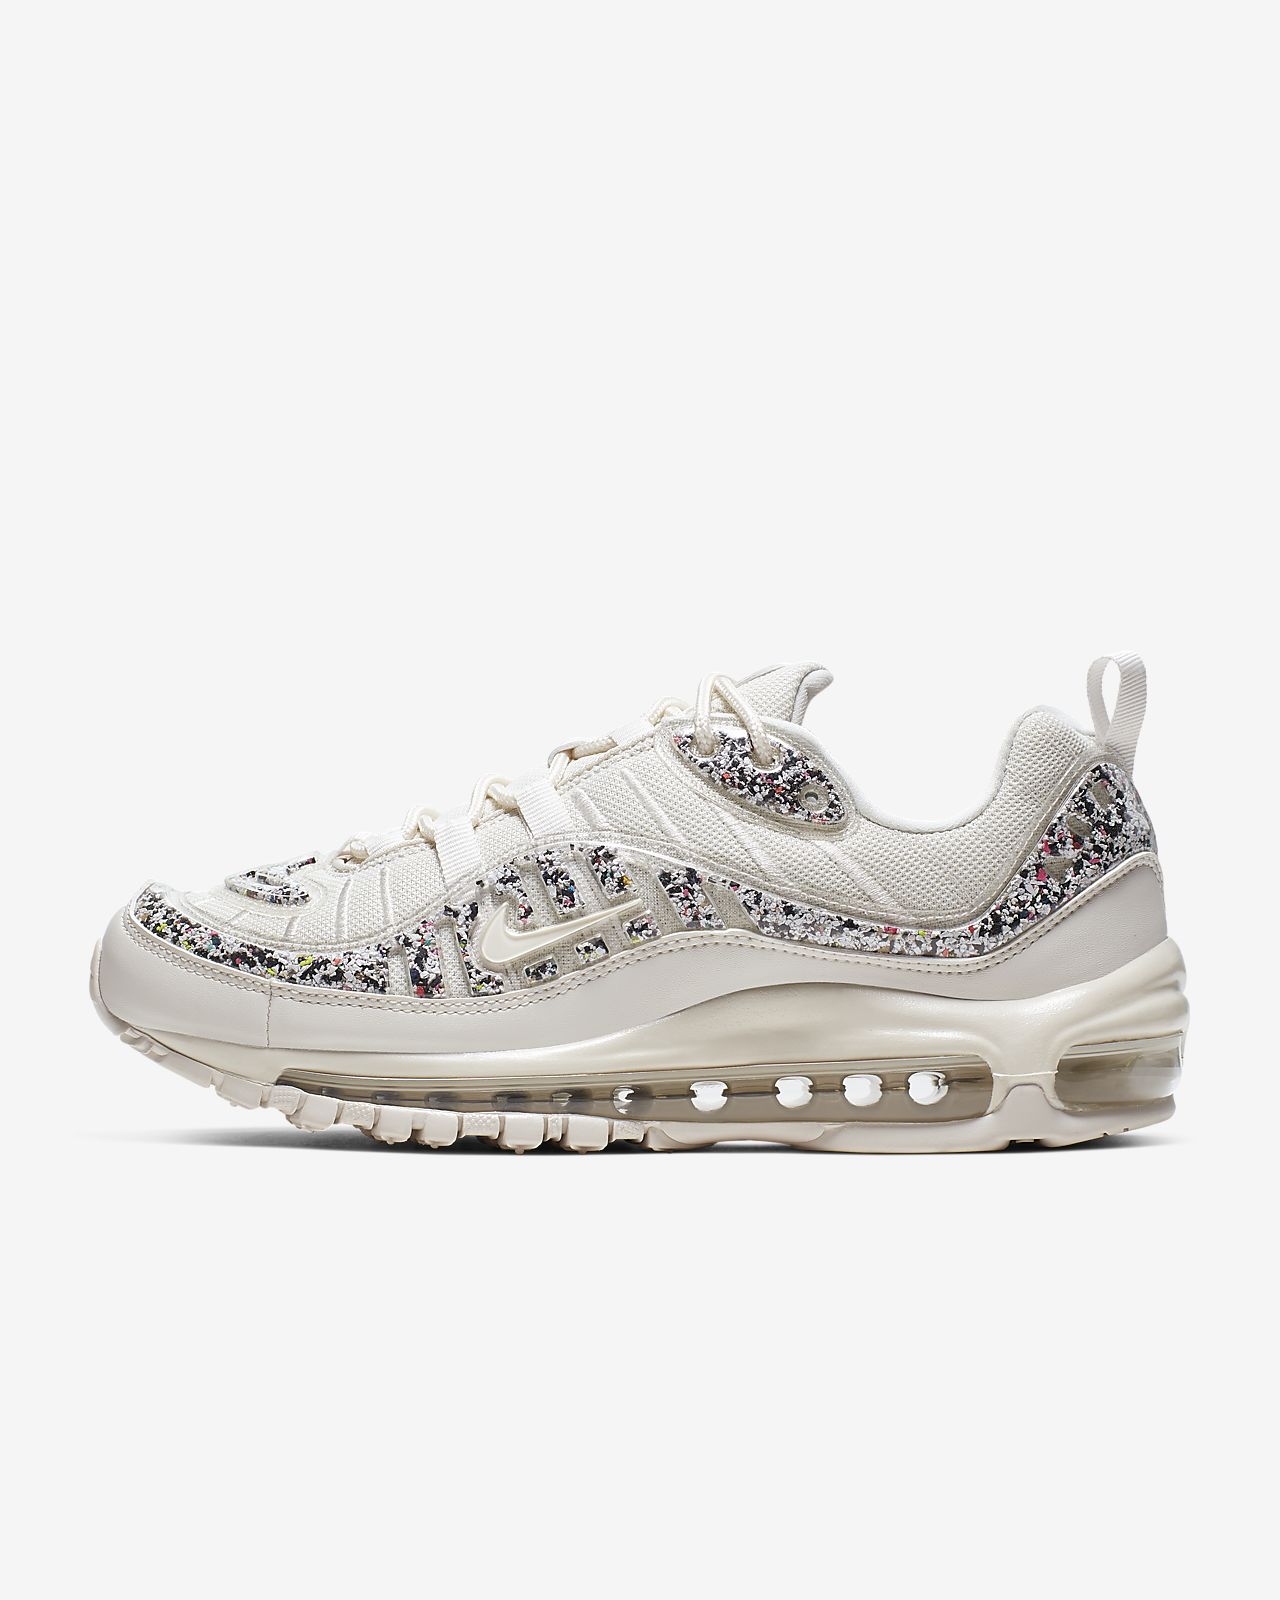 Nike Air Max 98 LX Damenschuh